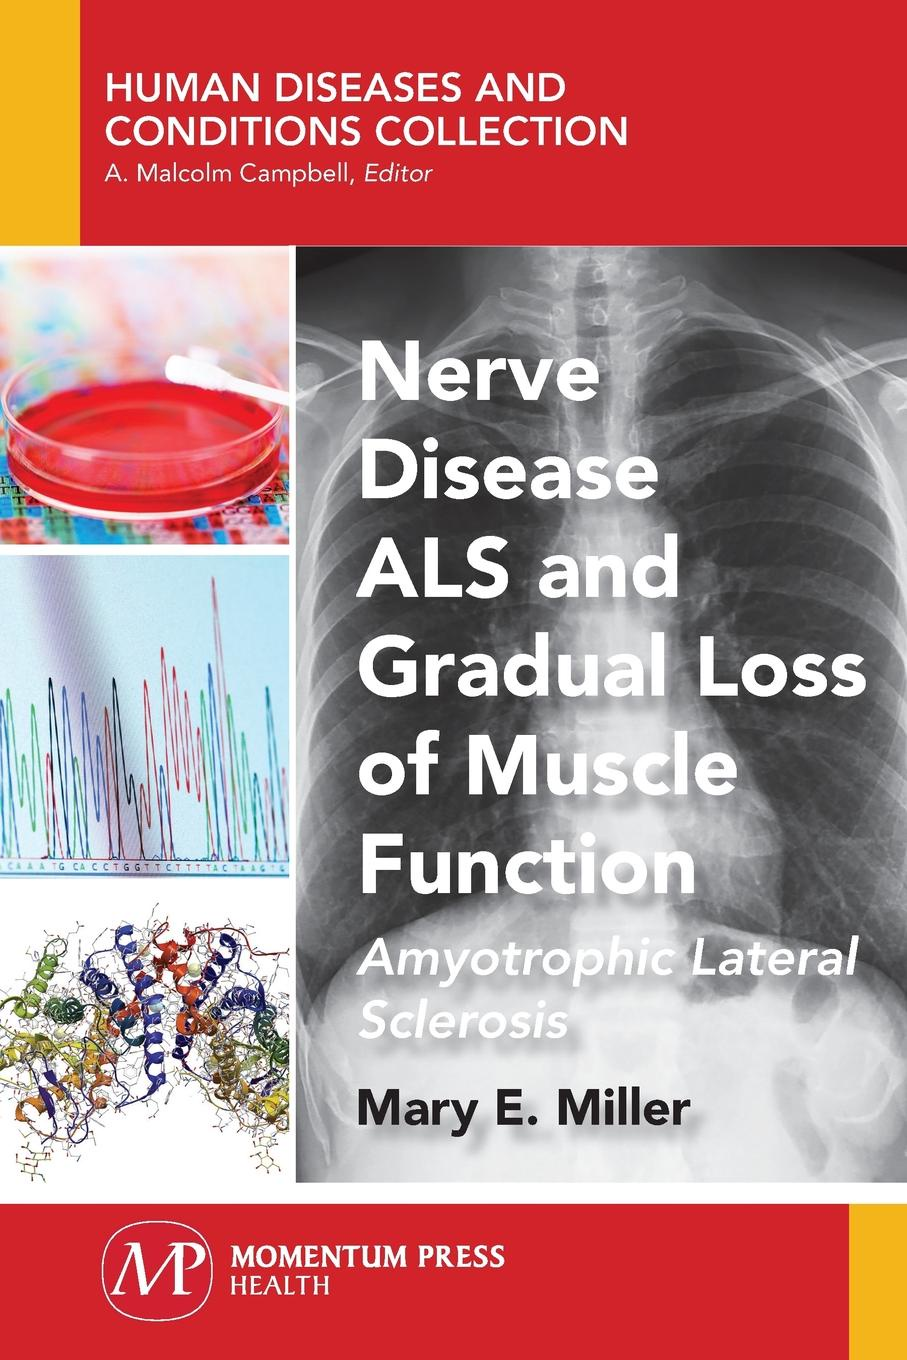 Mary E. Miller Nerve Disease ALS and Gradual Loss of Muscle Function. Amyotrophic Lateral Sclerosis epidemiology of lower limb fractures and ambulatory rehabilitation